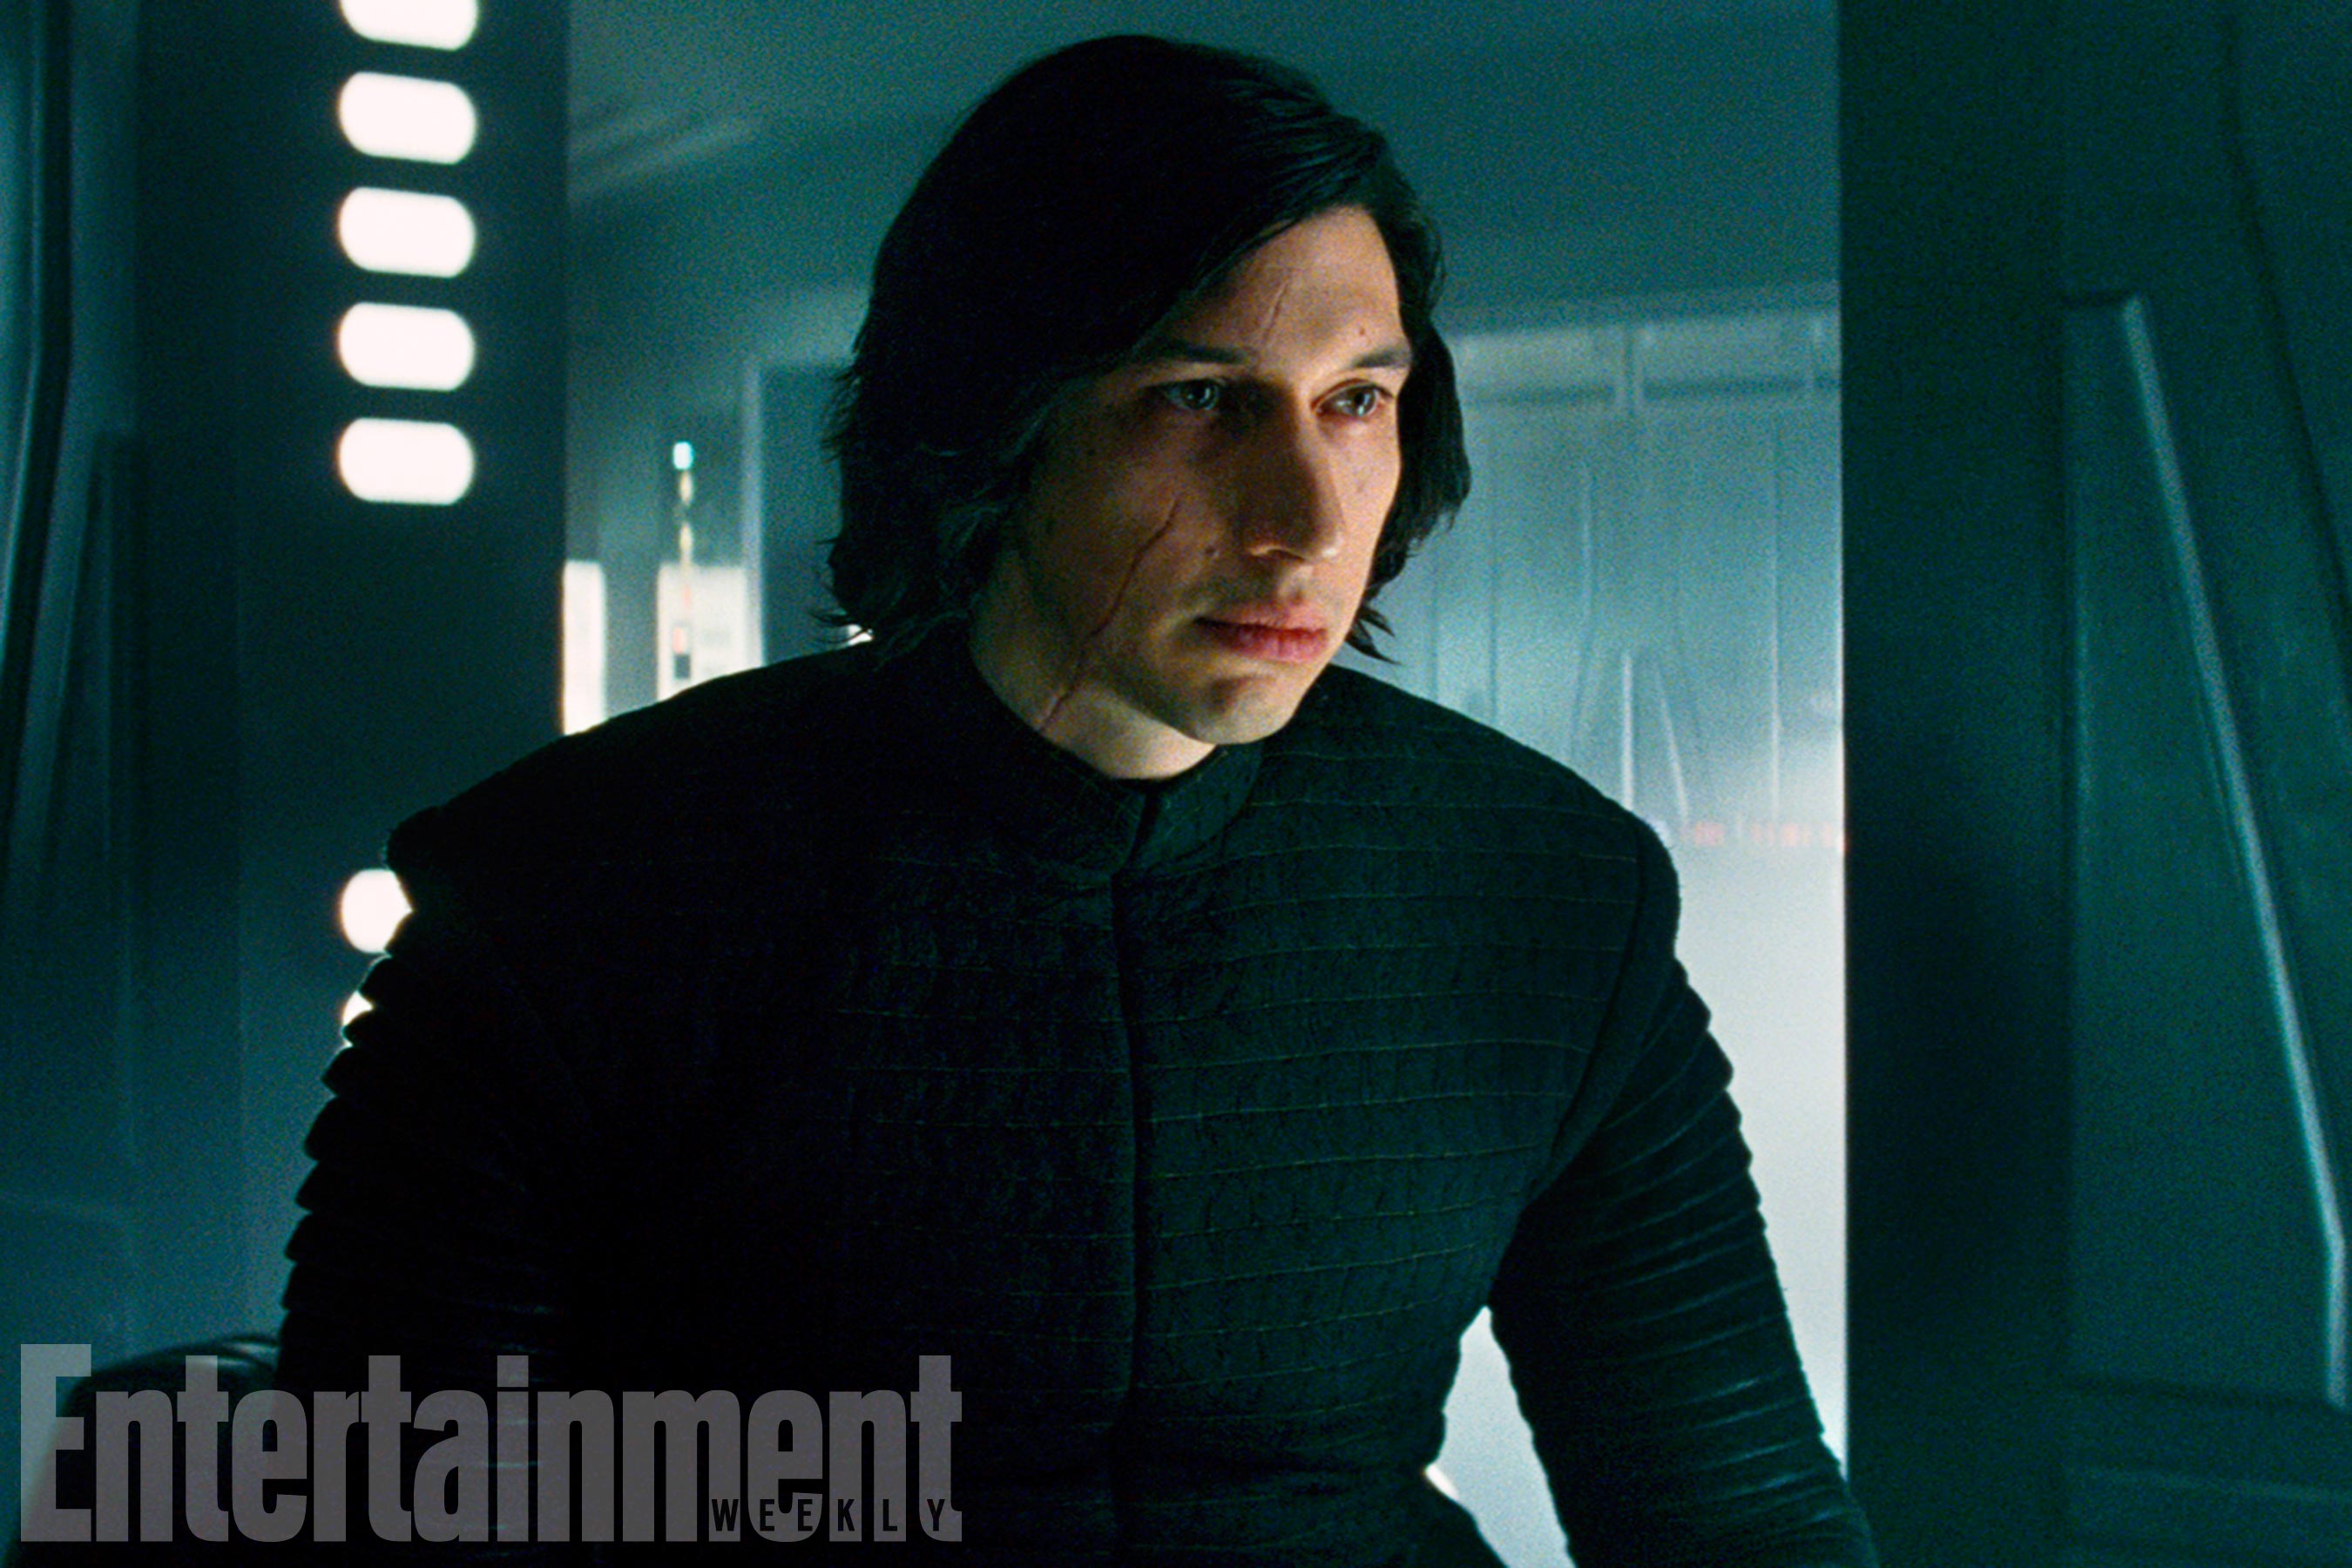 https://www.starwars-universe.com/images/actualites/episode8/entertainmentweekly_08_2017/04.jpg